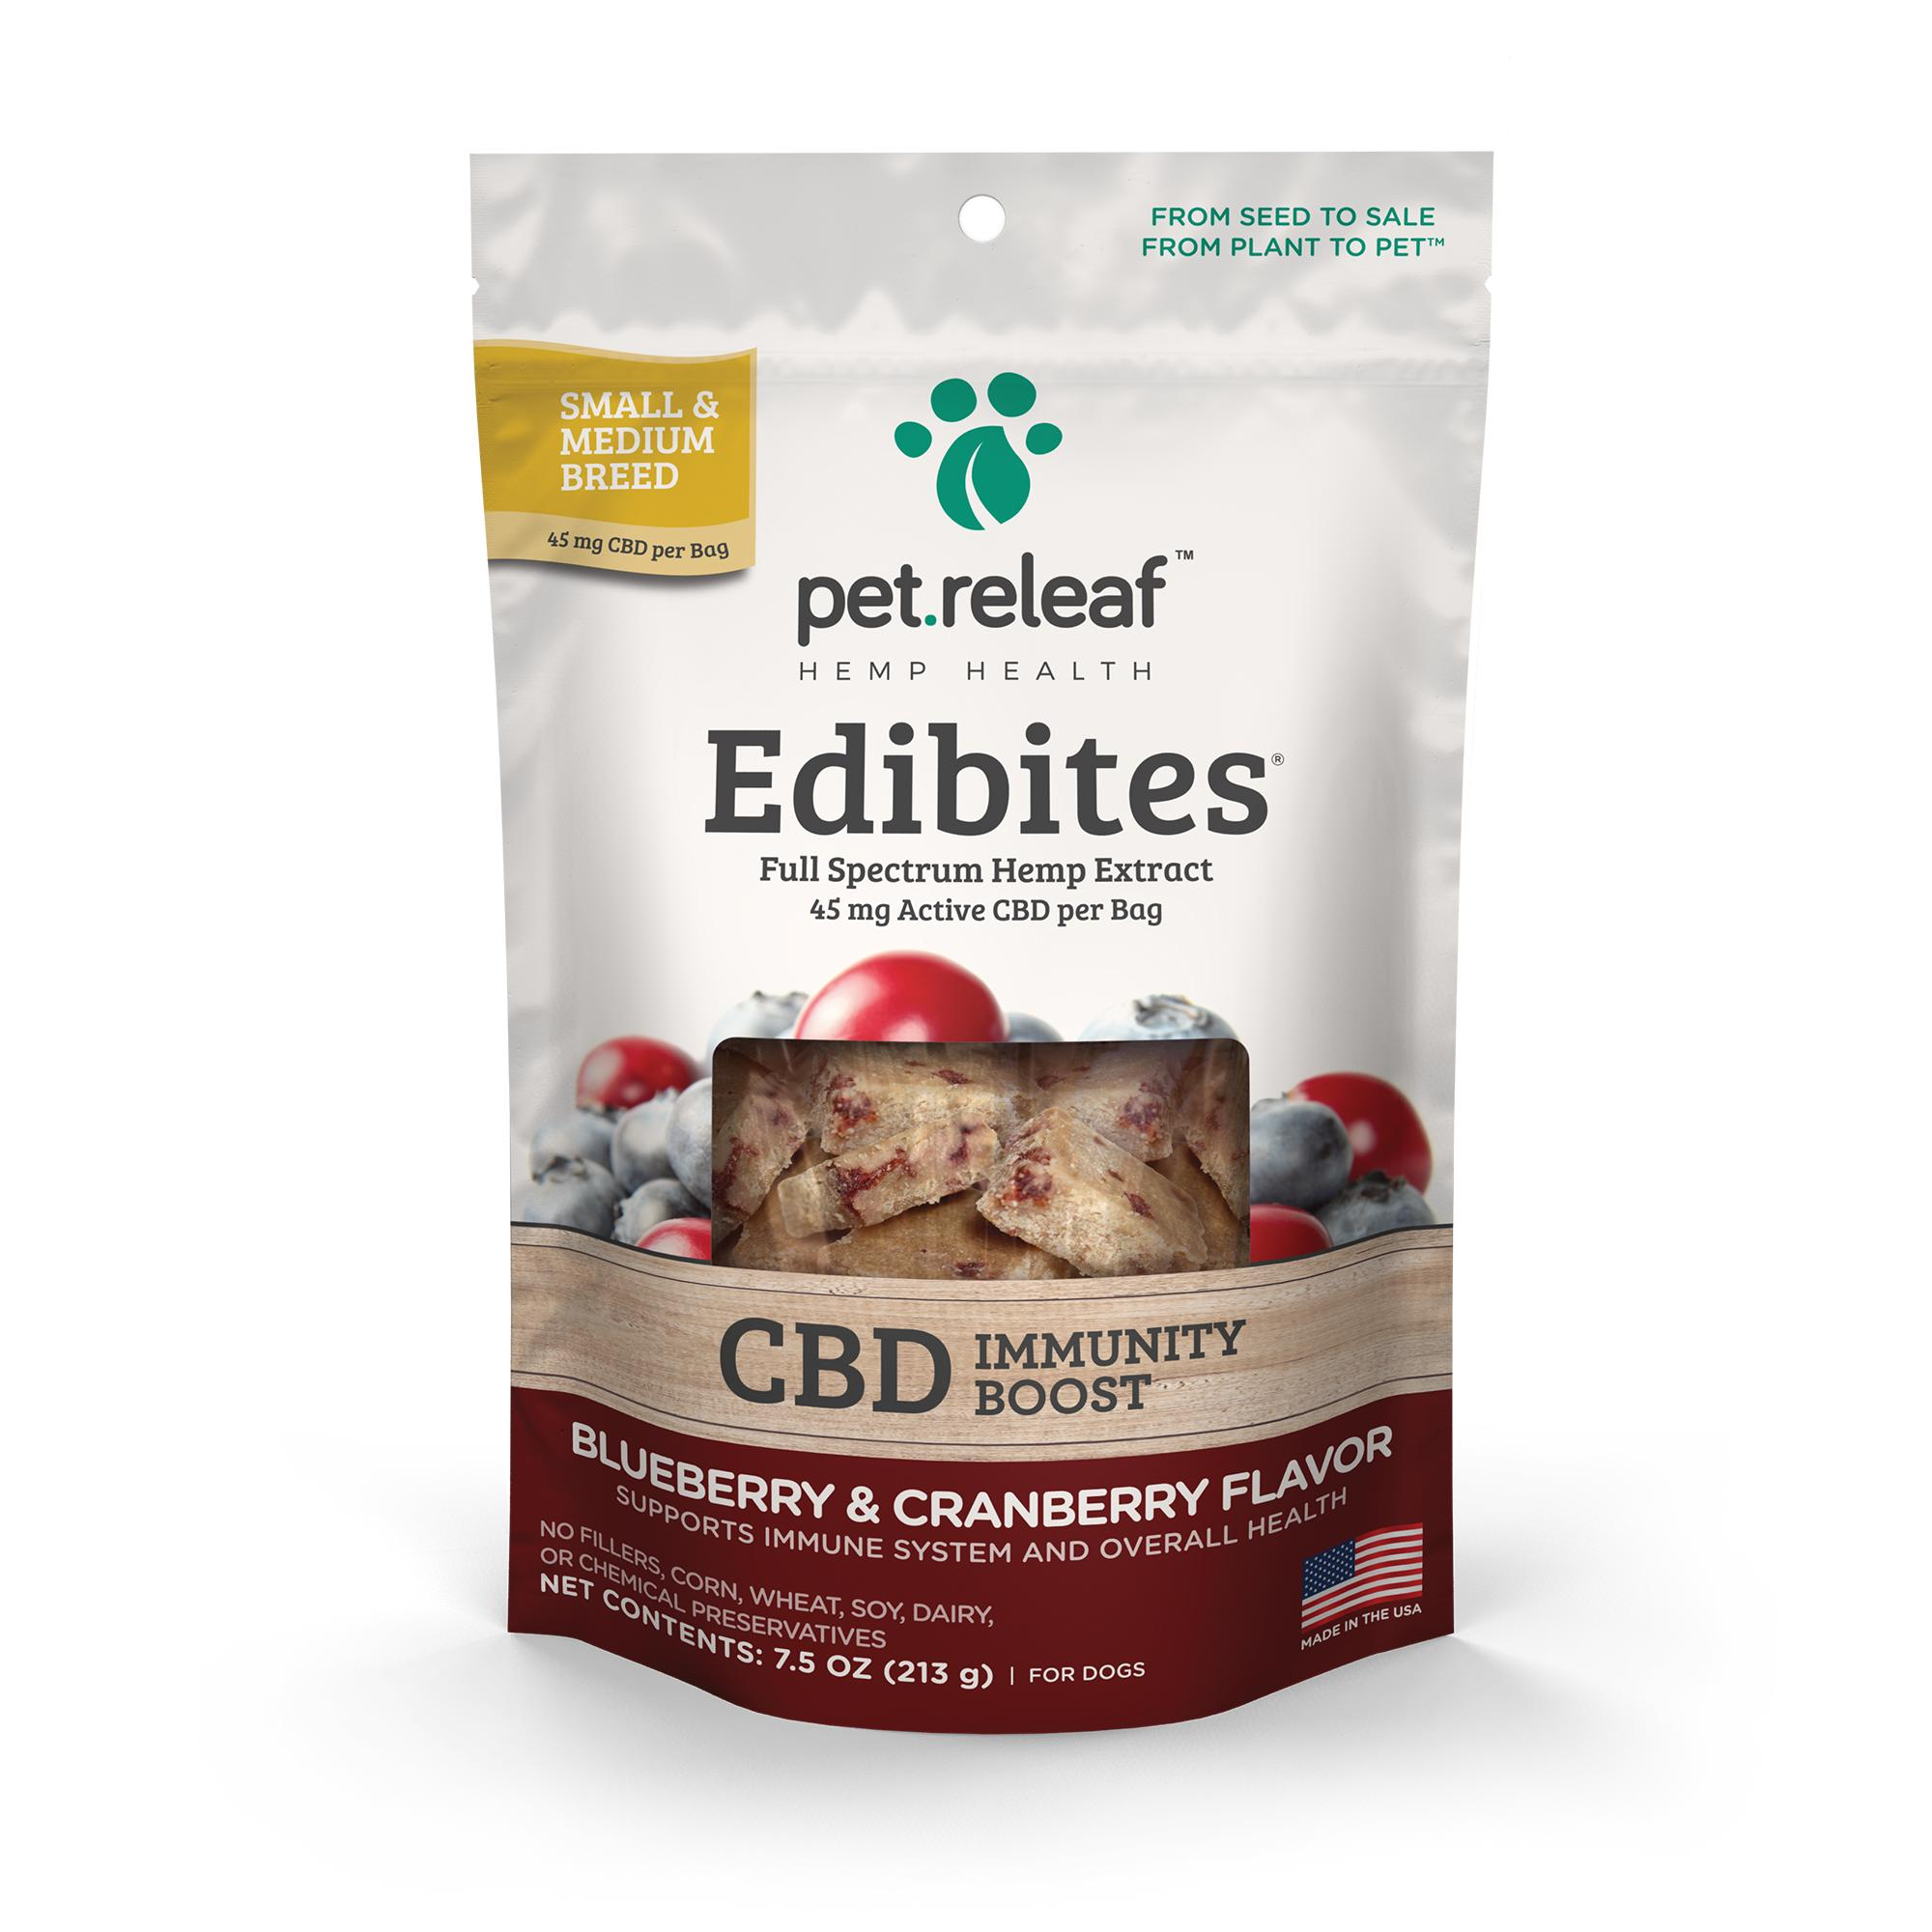 Pet Releaf Edibites Immunity Boost Blueberry & Cranberry Small & Medium Breed Dog Supplement, 7.5-oz